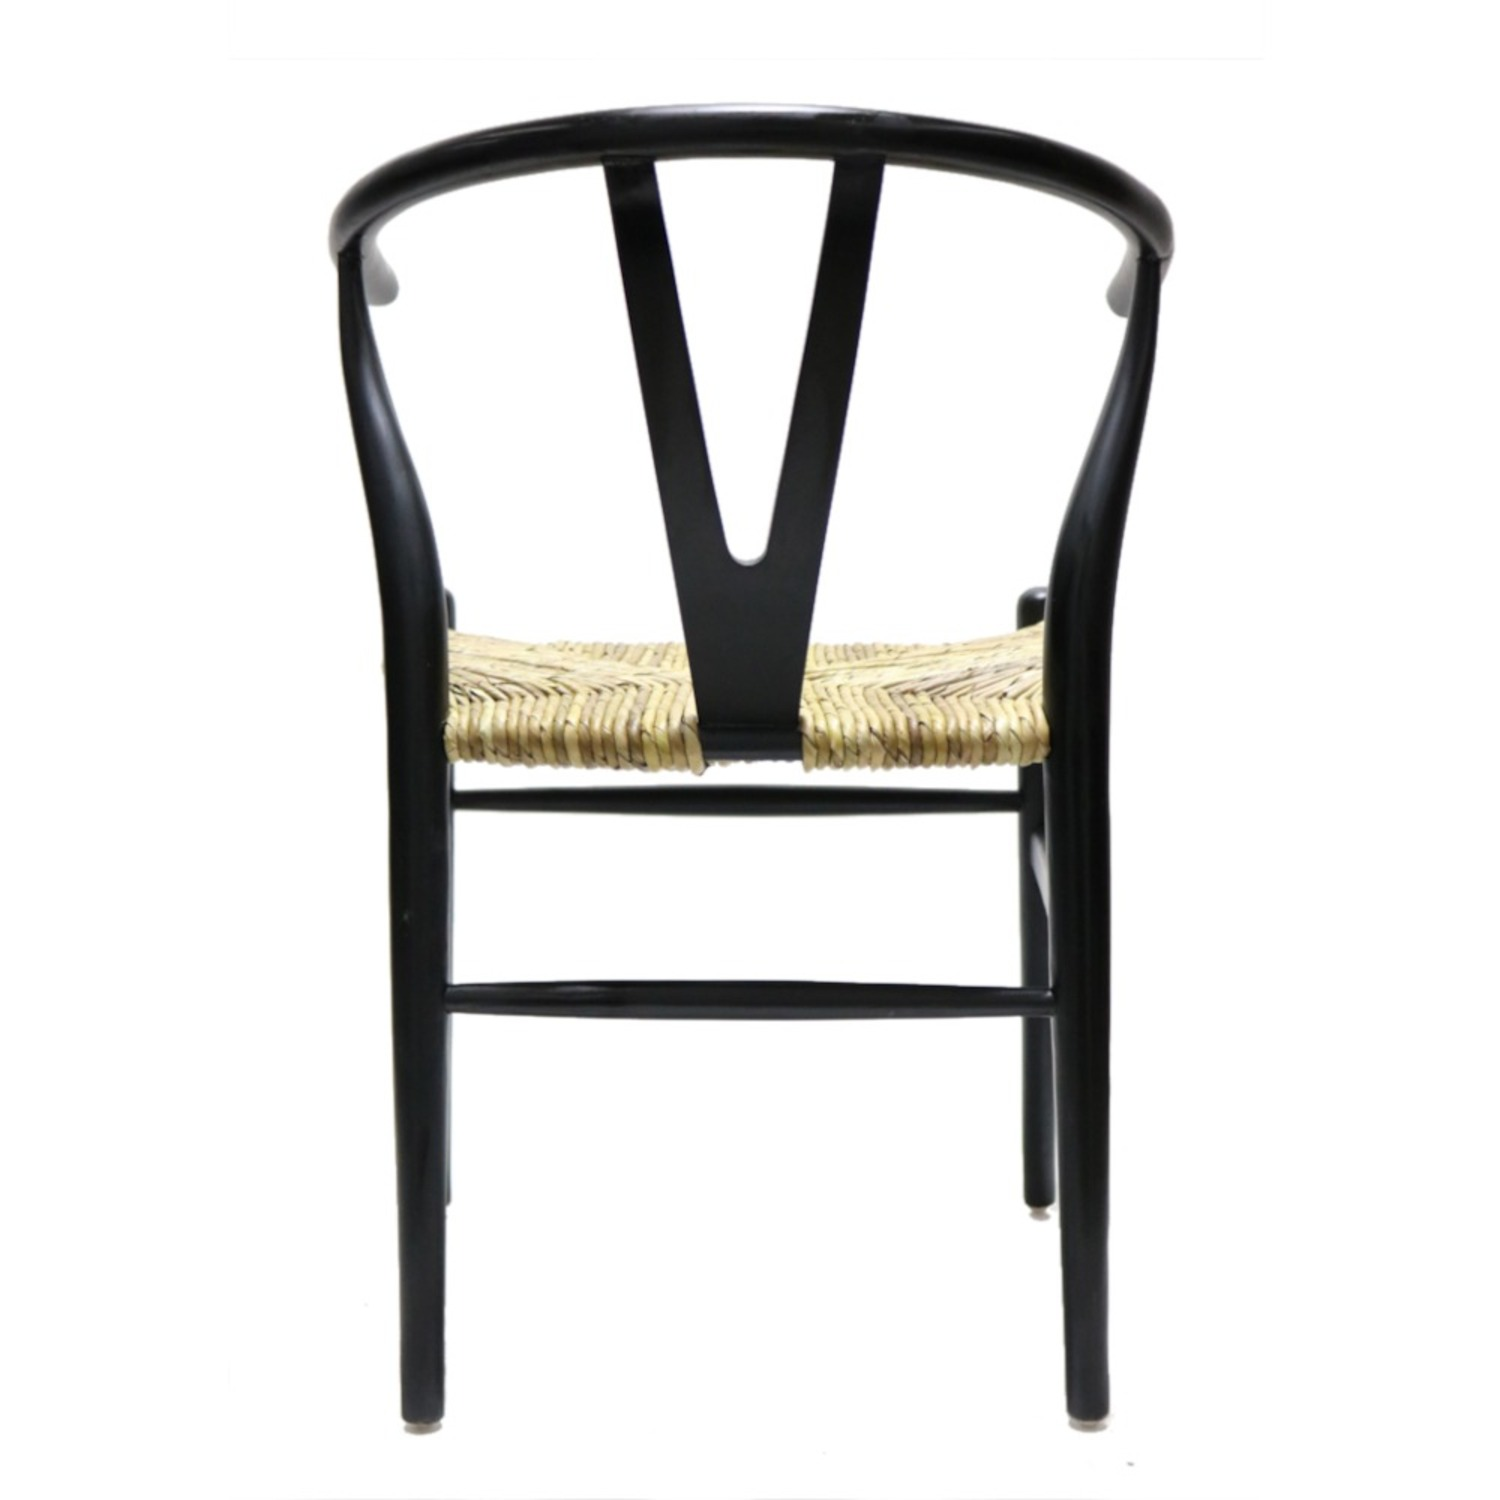 Dining Chair In Black Frame & Natural Hemp Seat - image-5